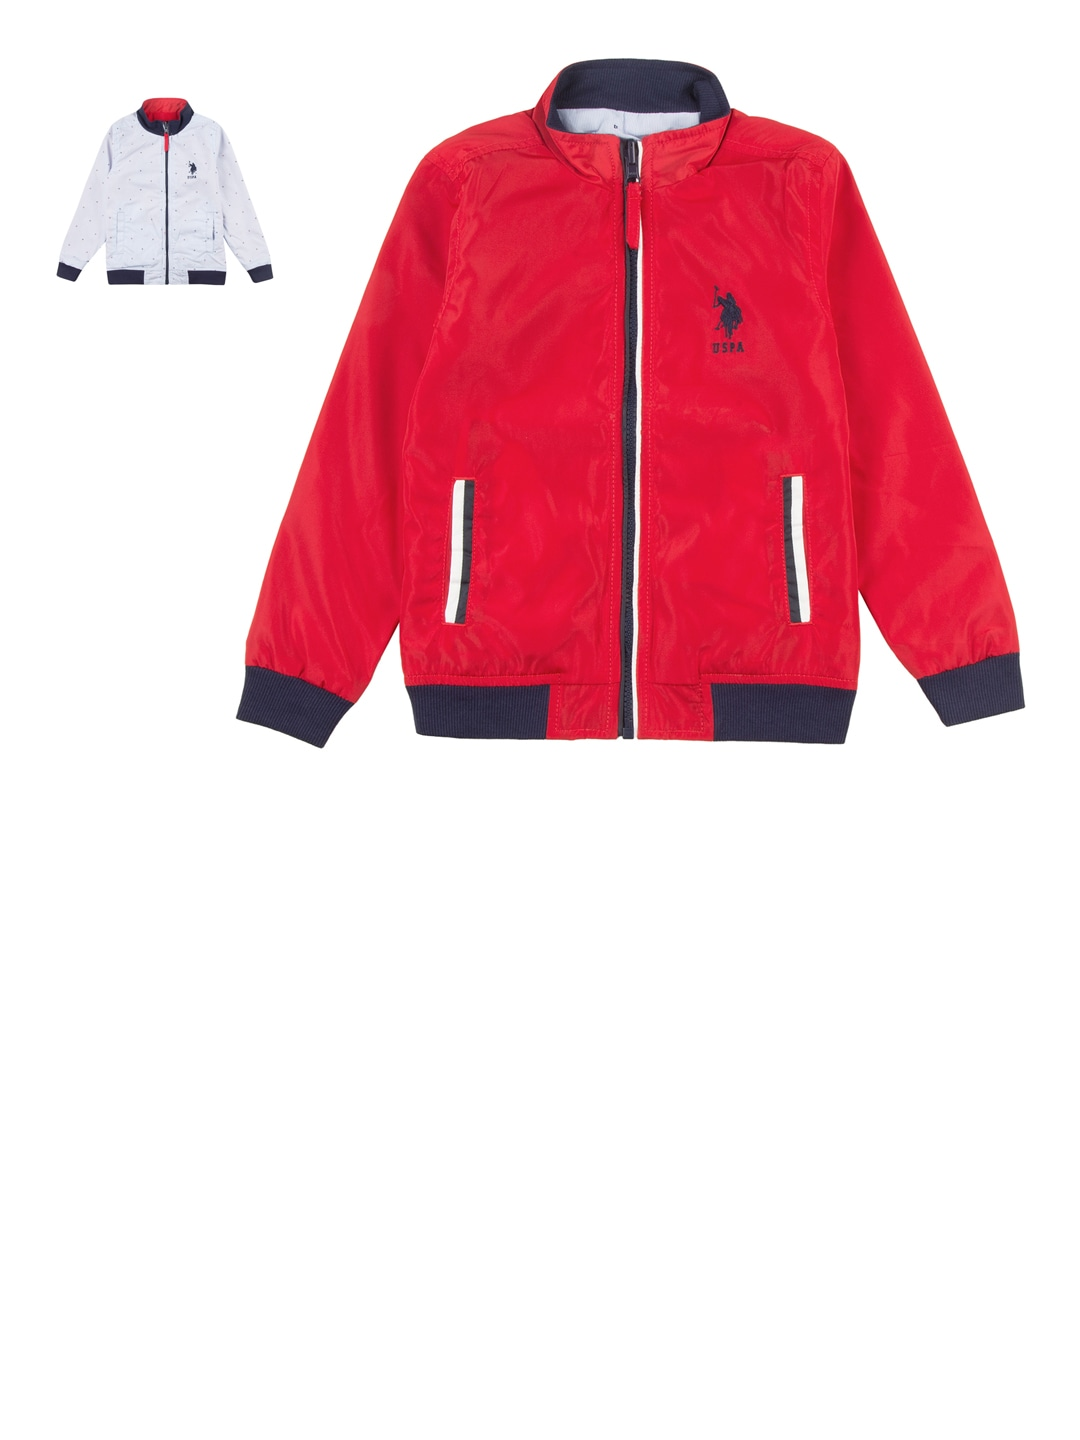 80ebc0527530 Boys Jackets- Buy Jackets for Boys online in India